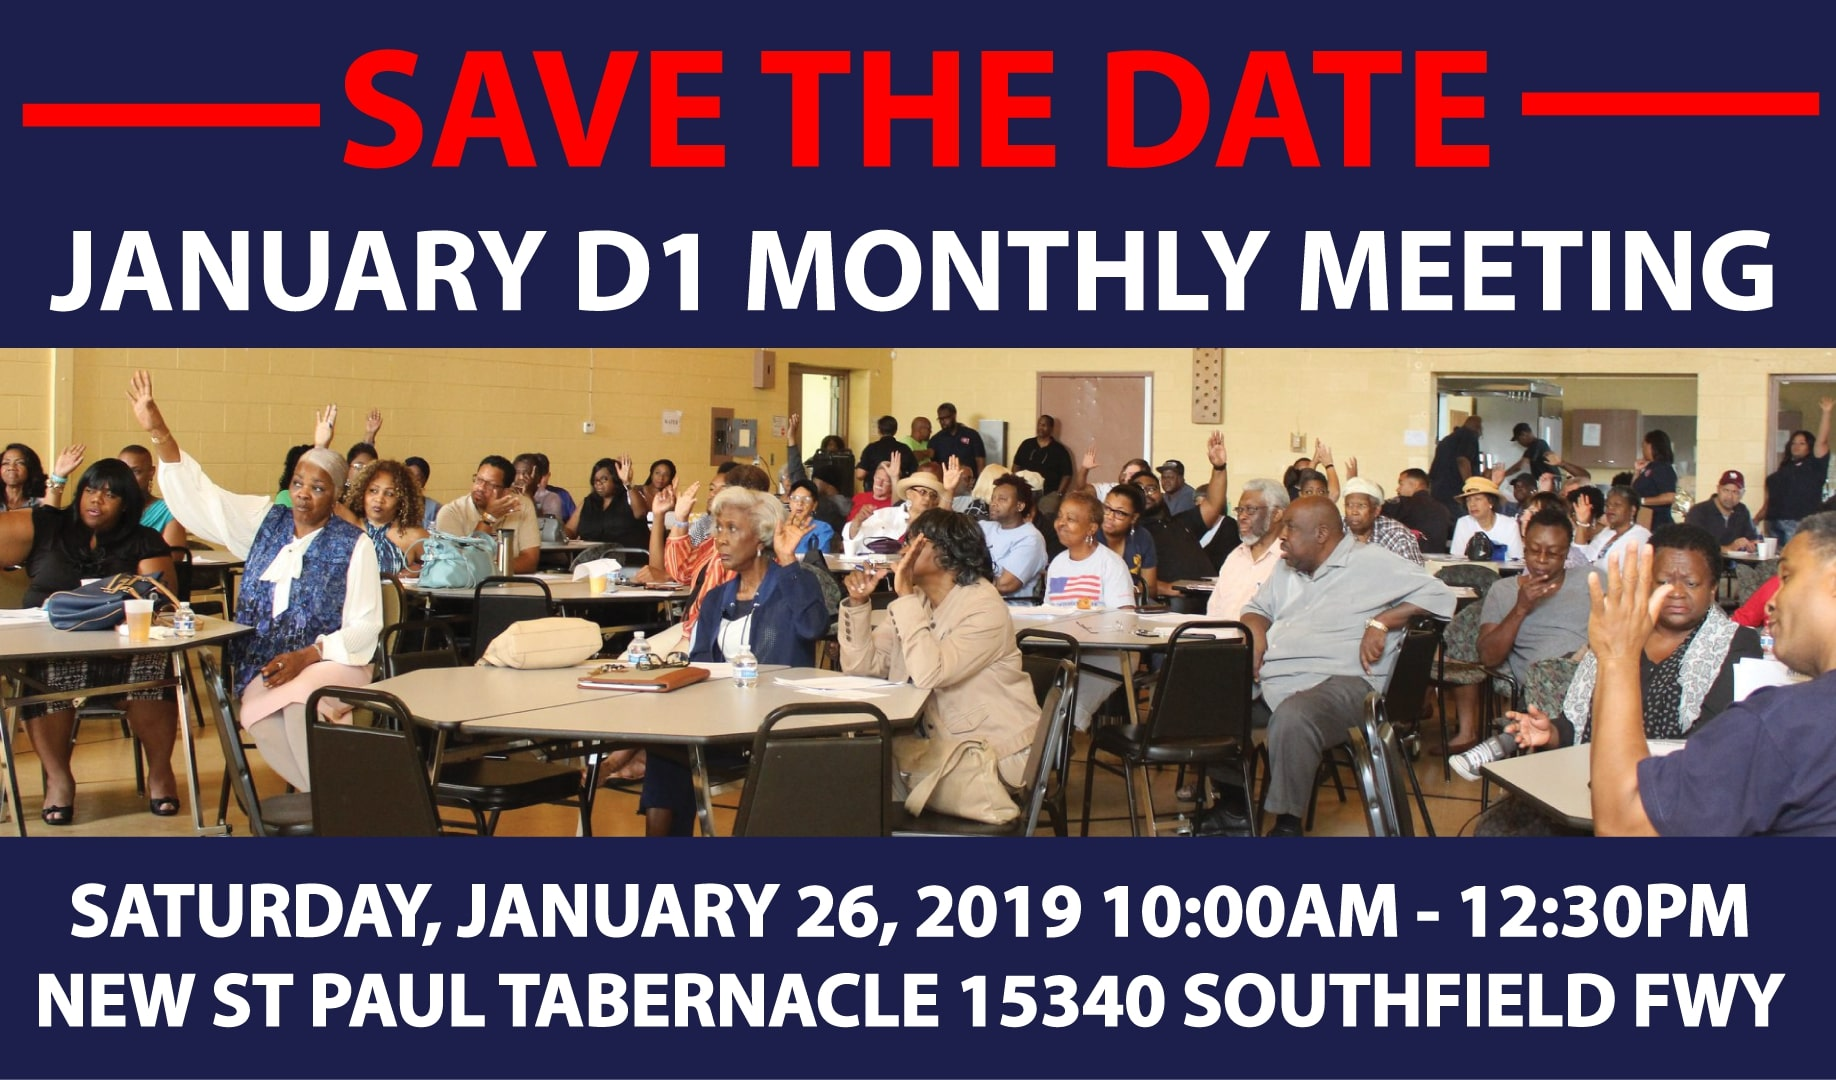 D1 Monthly Meeting Save The Date